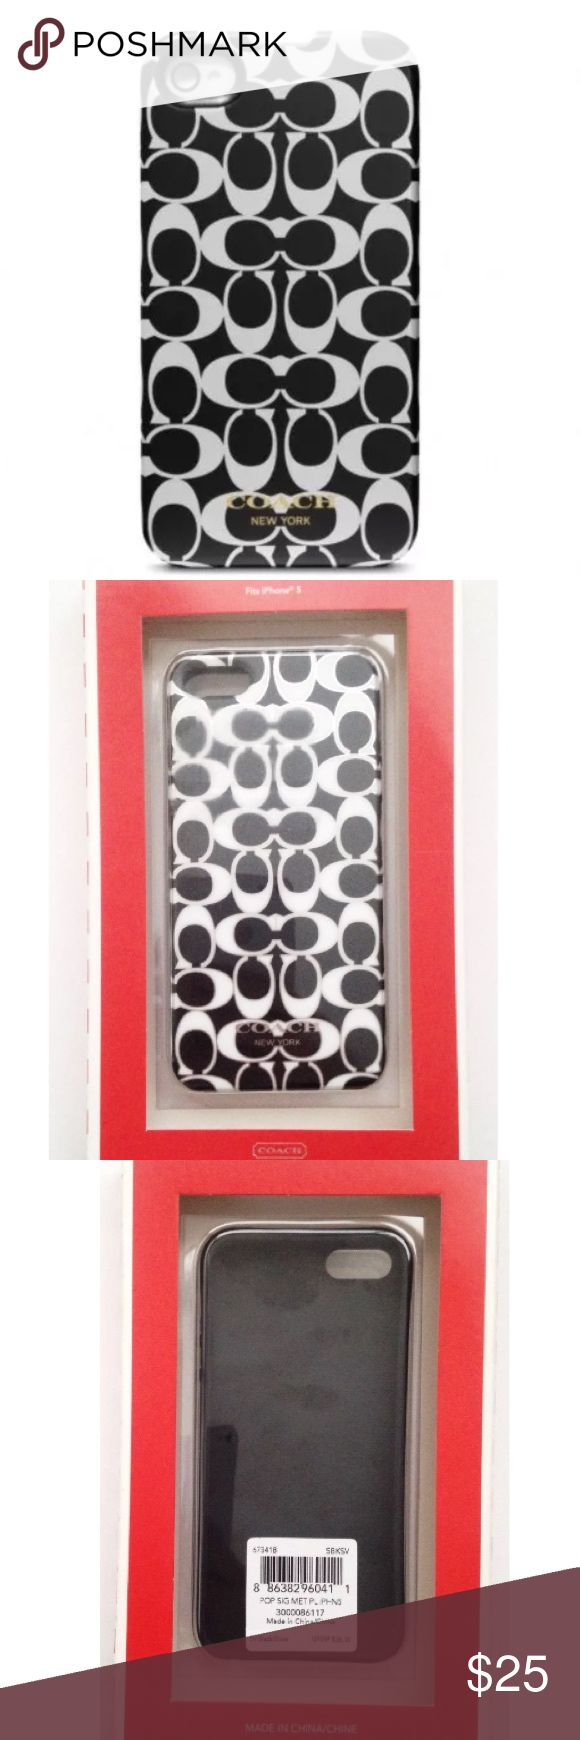 """NWT iPhone 5 Apple Coach Monogram Phone Case Brand New With Box Coach monogram """"C"""" Snap On Case Size: Fits Apple Iphone 5 This hard shell designer plastic phone case will spice up your Iphone. The background color is black with the signature white """"C"""" repeat pattern. The """"C""""s are outlined with silver. Retail: $38.00 USD  Material Content: Plastic Coach Accessories Phone Cases"""